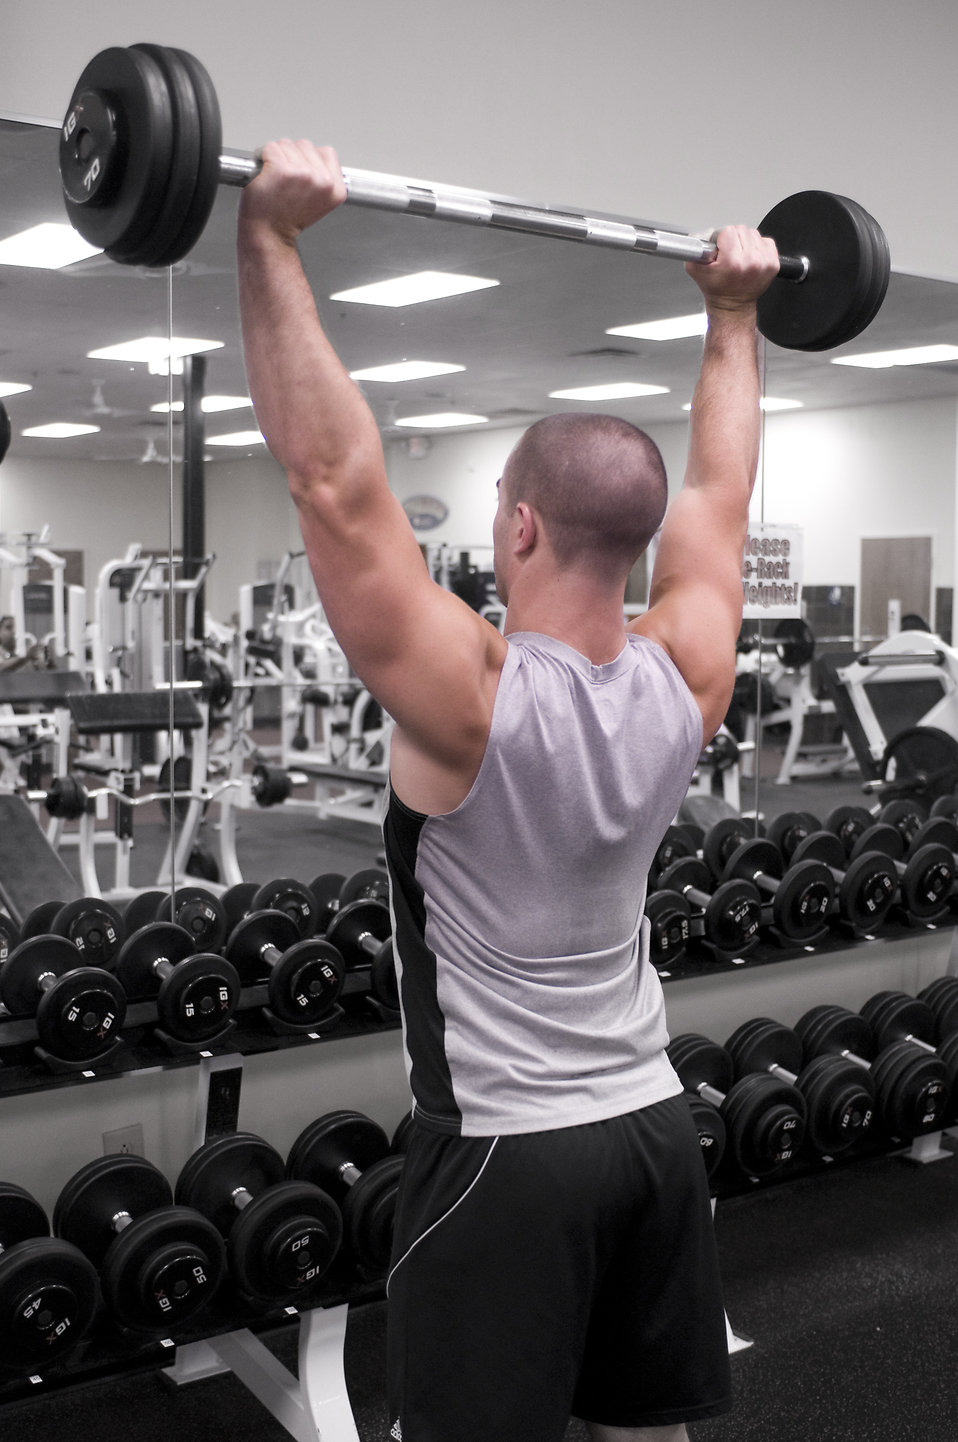 A healthy young man lifting weights in a gym : Free Stock Photo